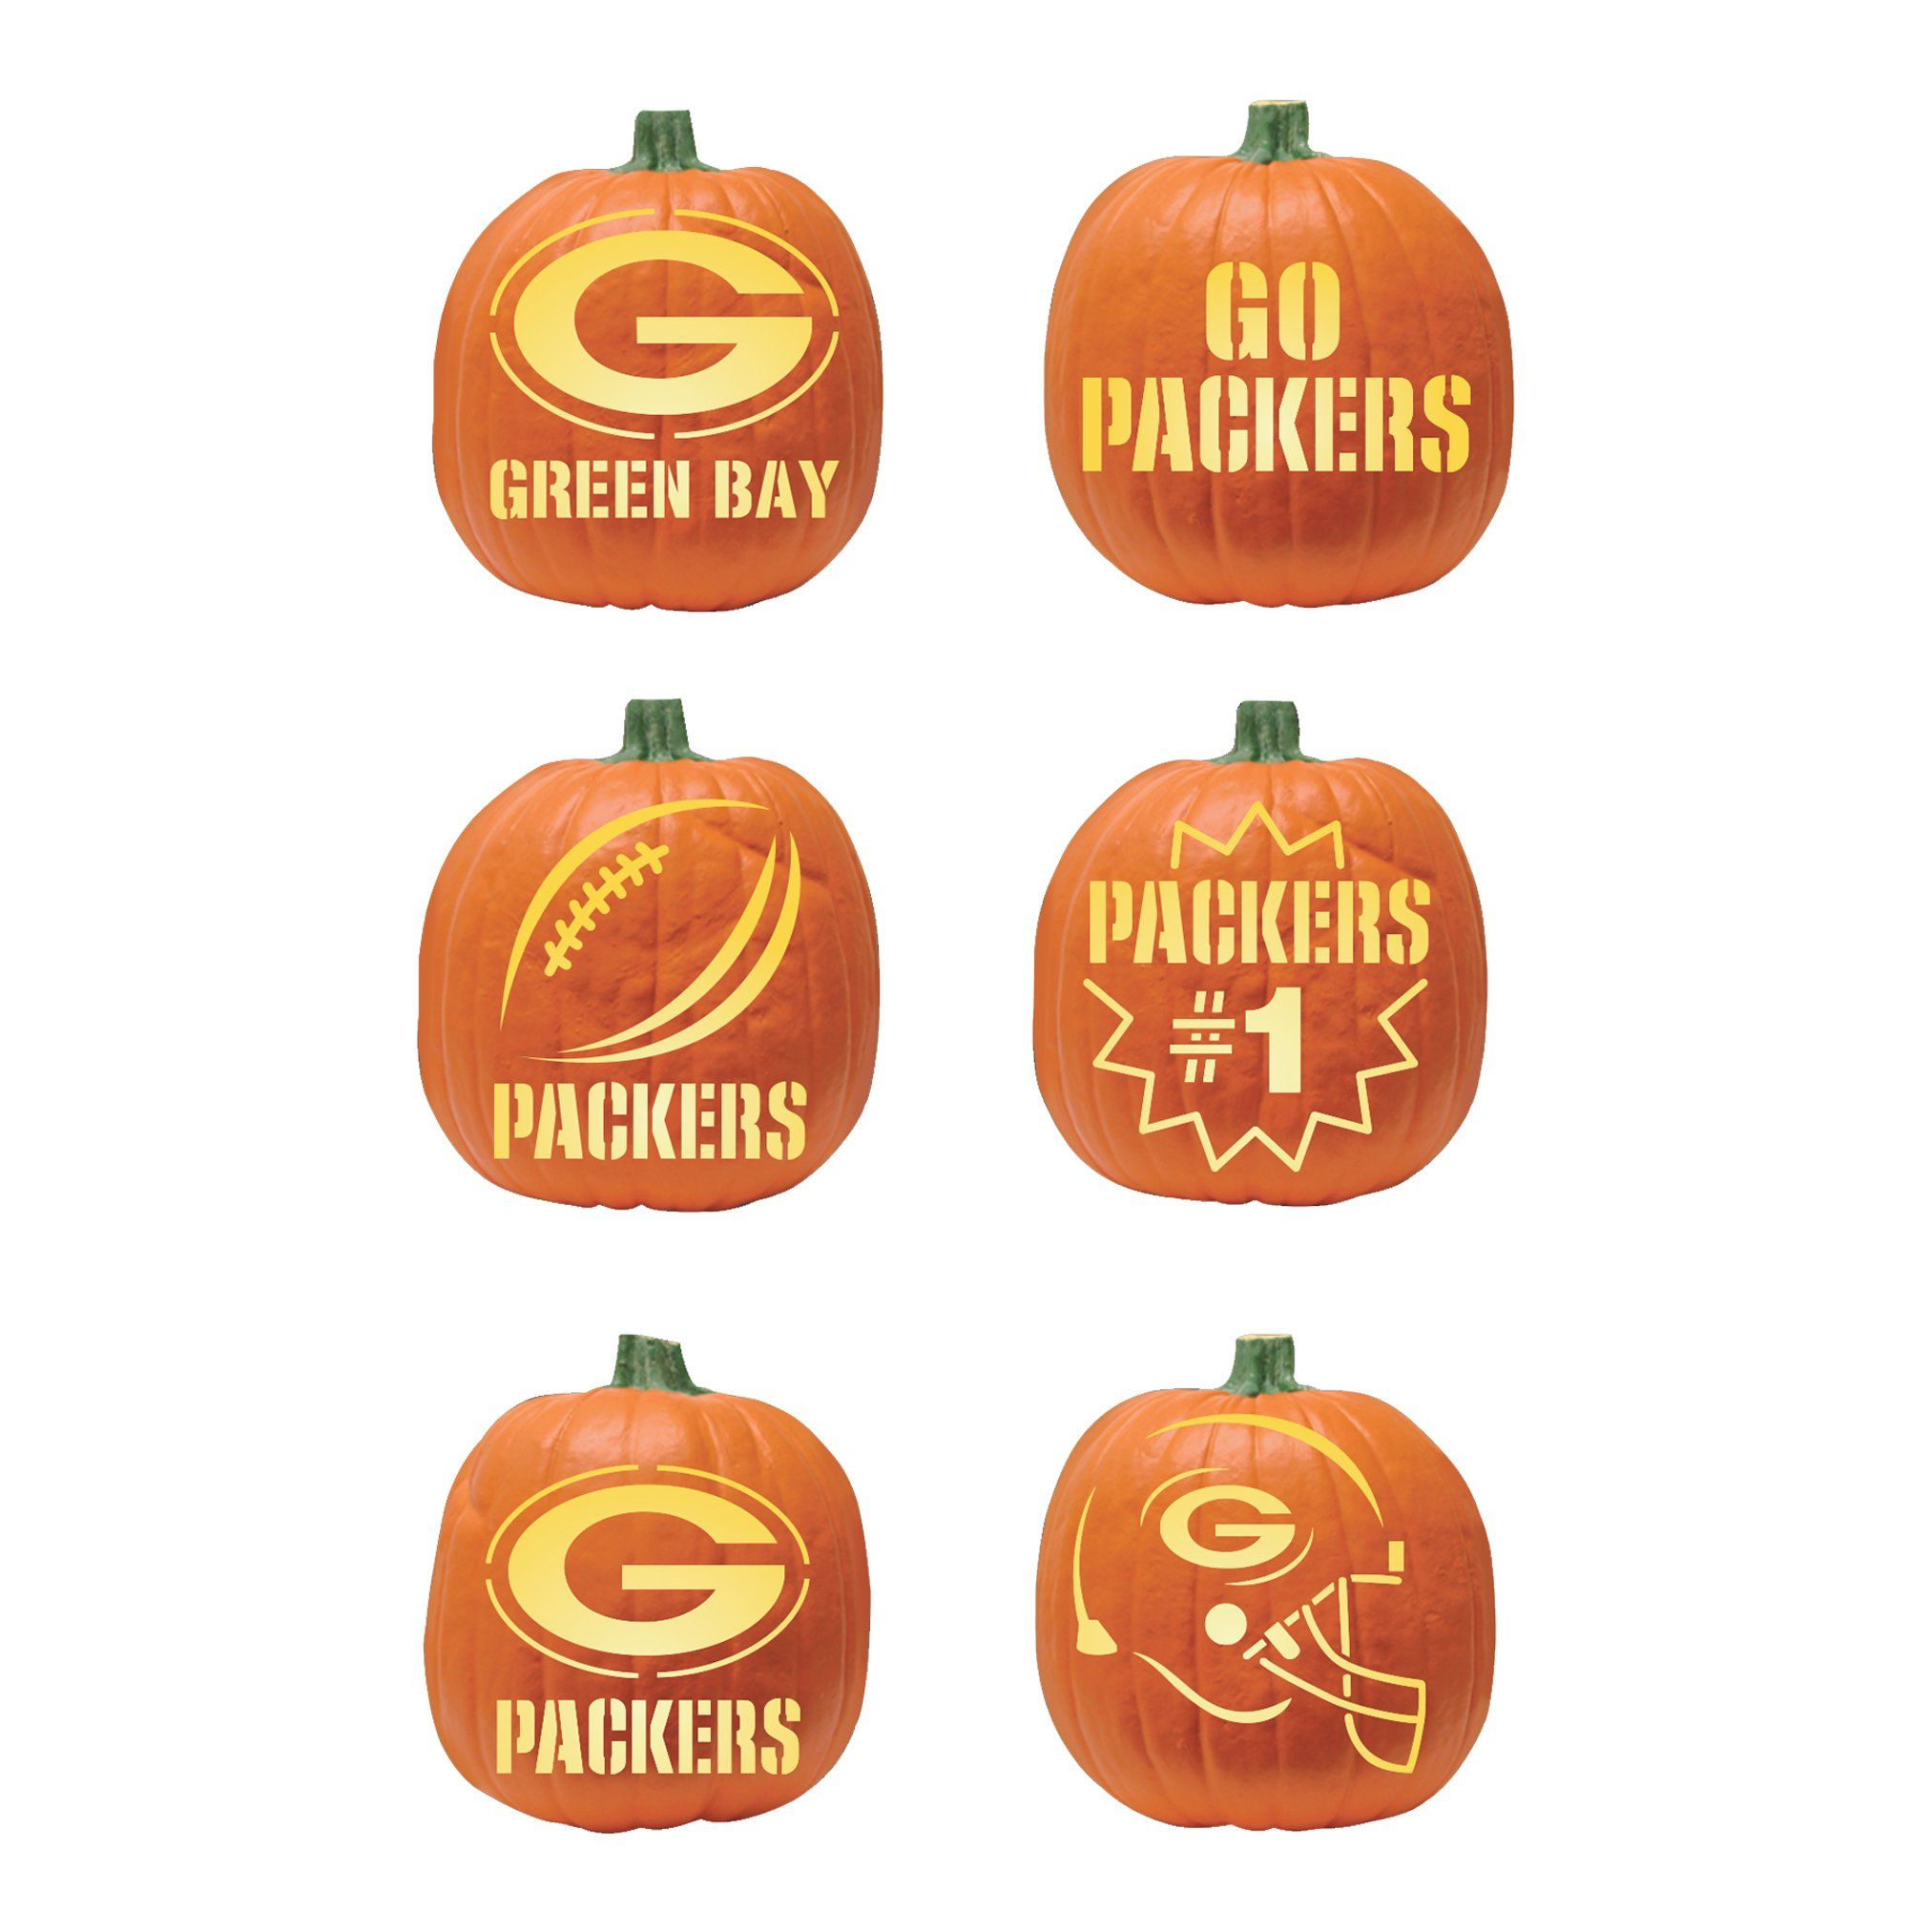 green bay packers pumpkin carving kit | packers | pinterest